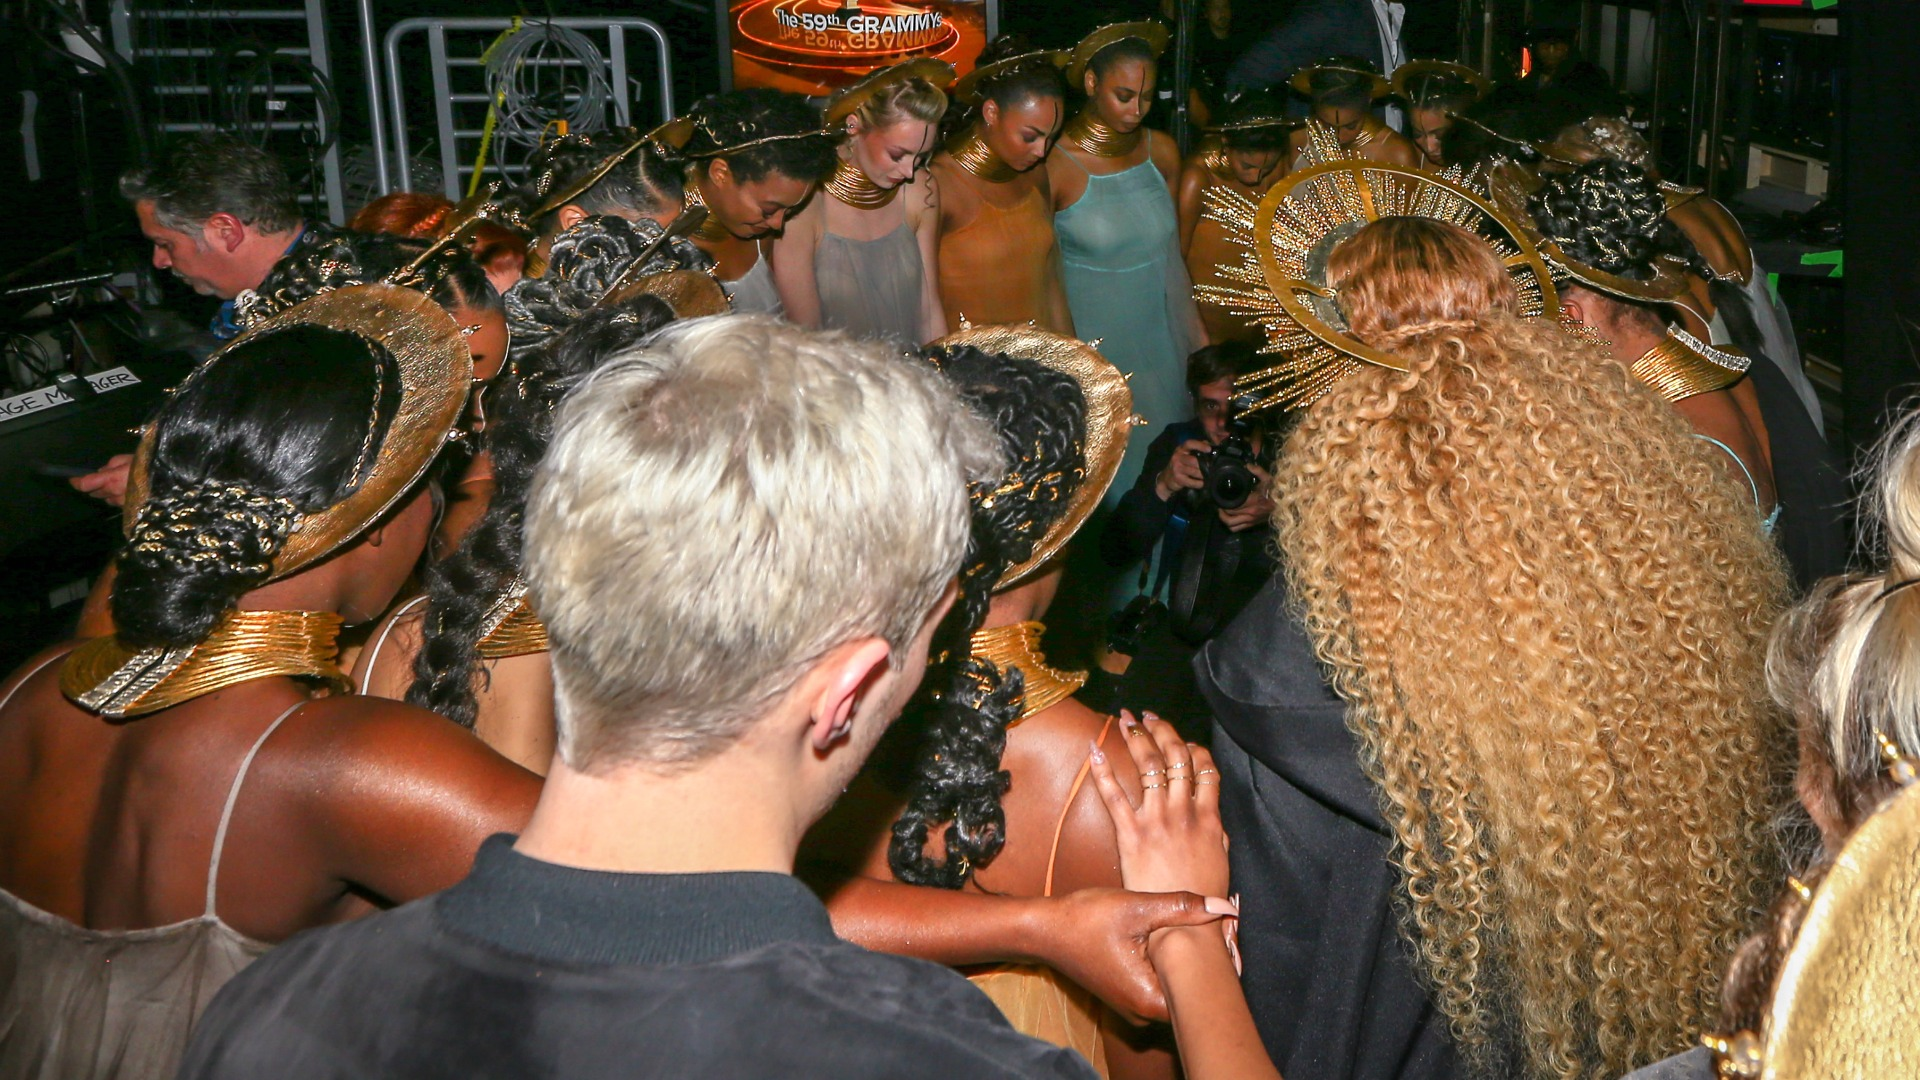 Beyoncé and her loyal subjects join hands for a pre-show ritual before performing